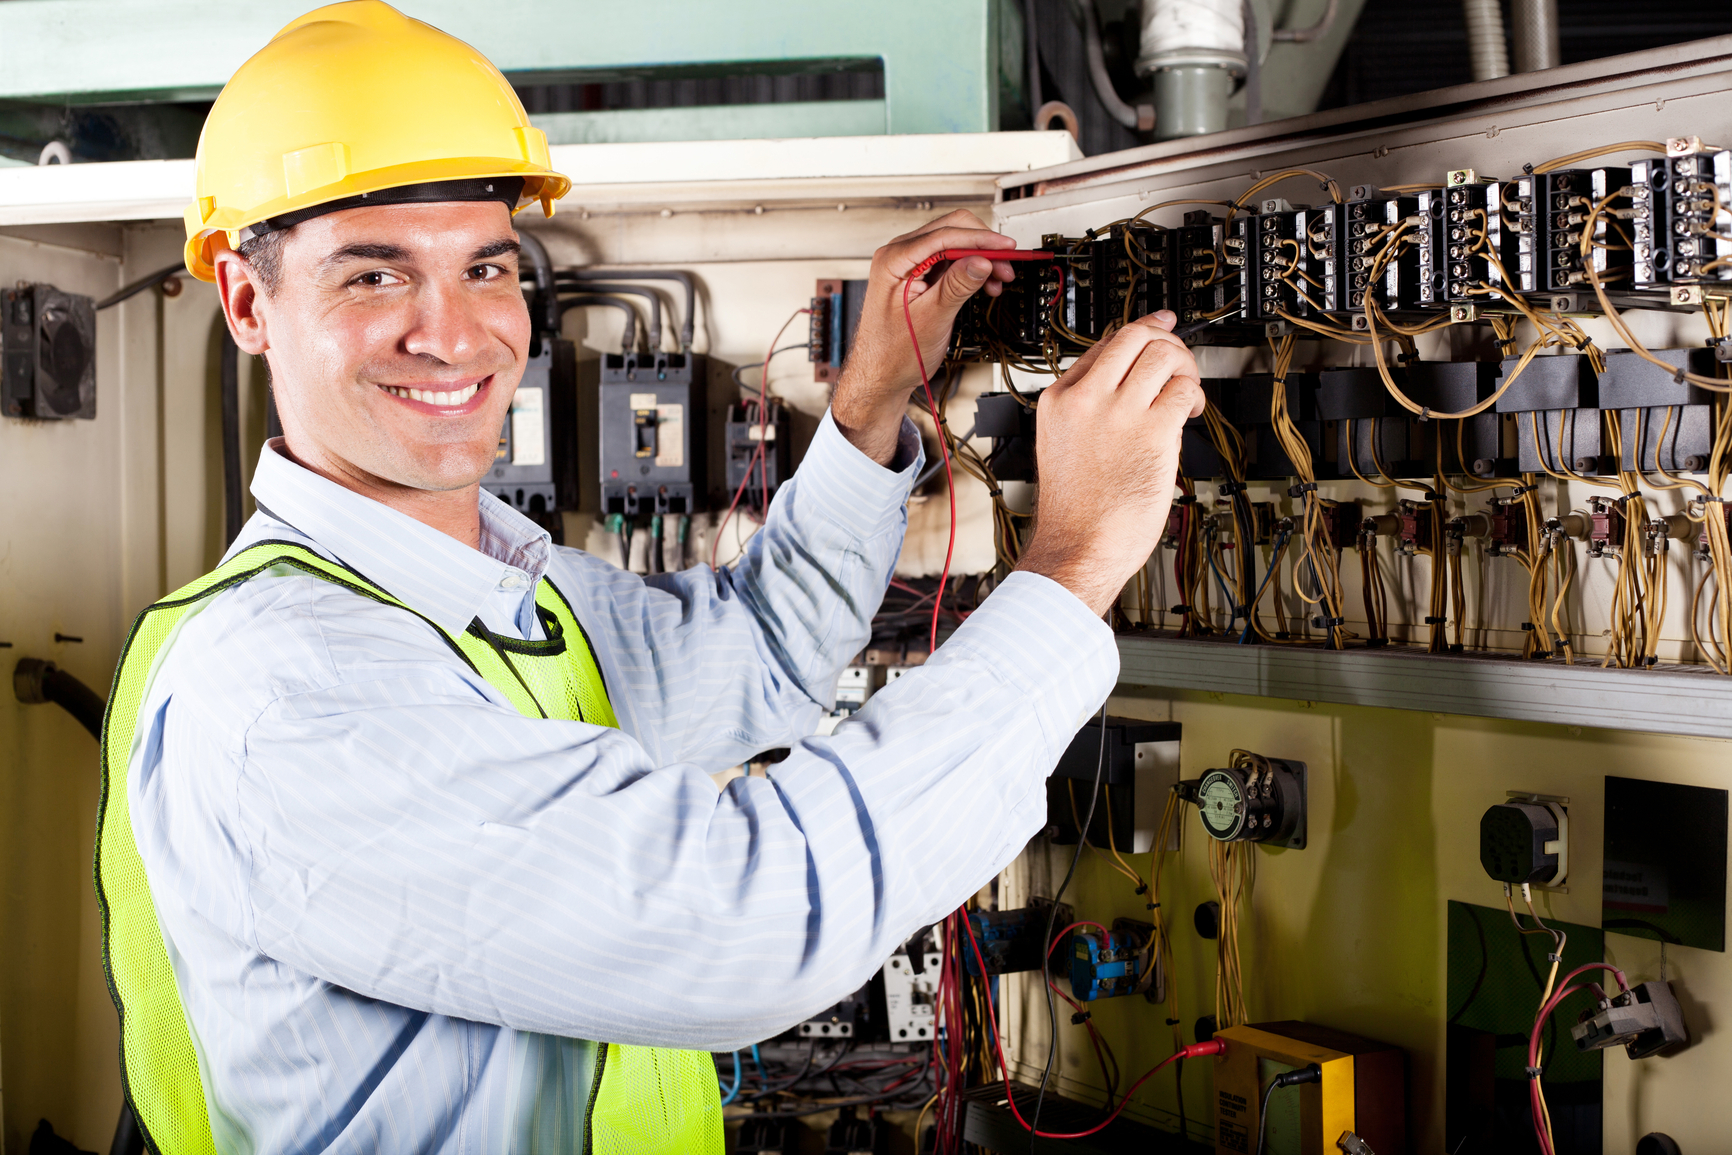 Why You Should Always Hire A Qualified Electrical Contractor